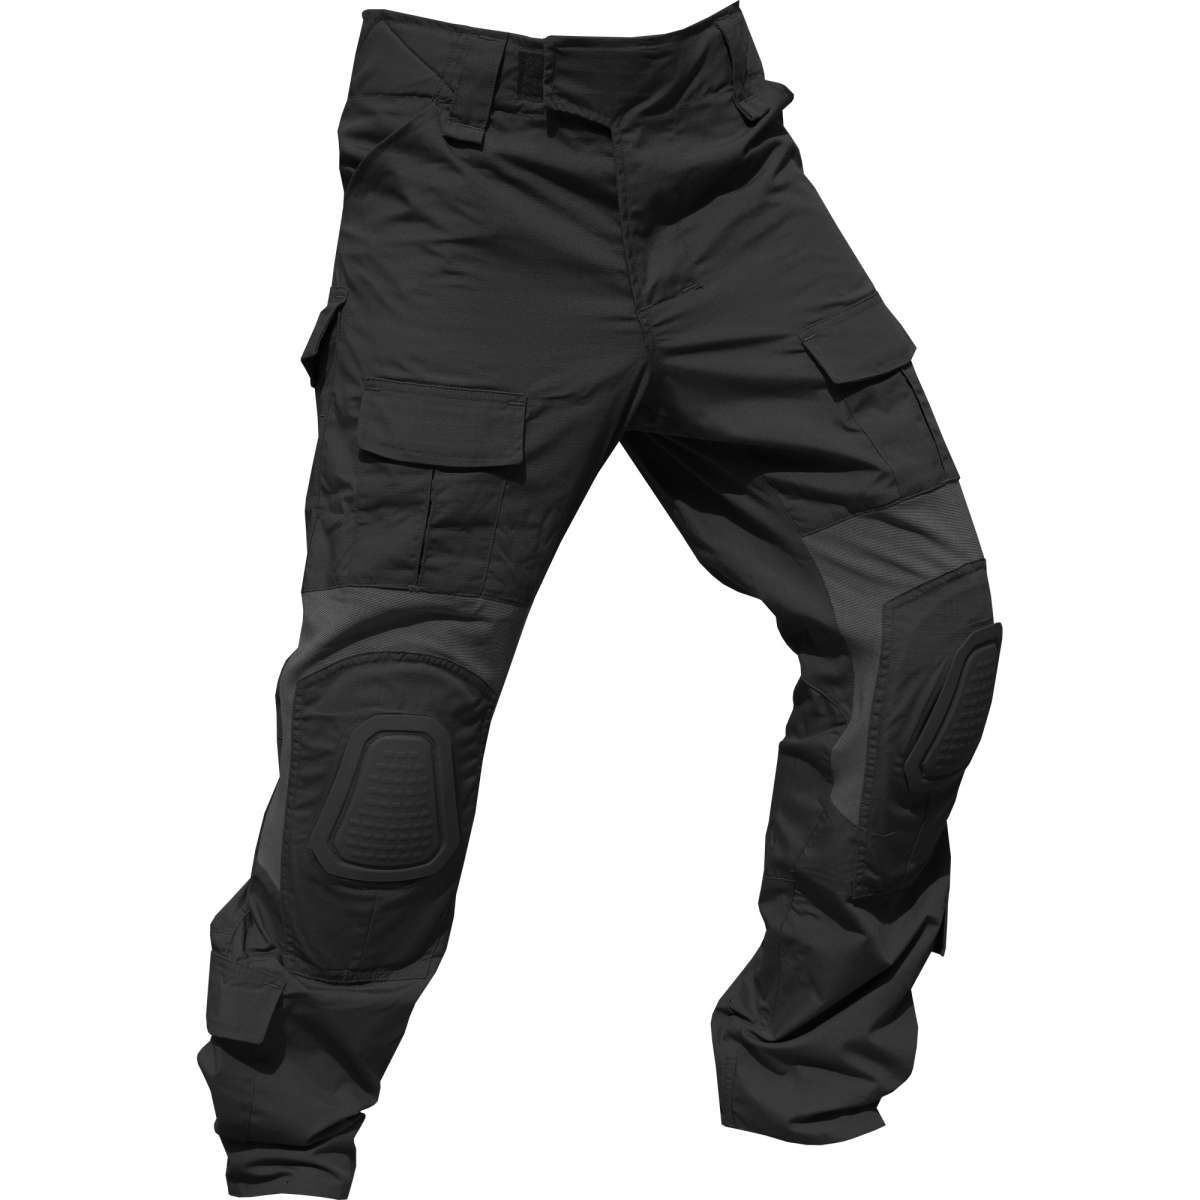 Invader Gear Predator Combat Pants, black